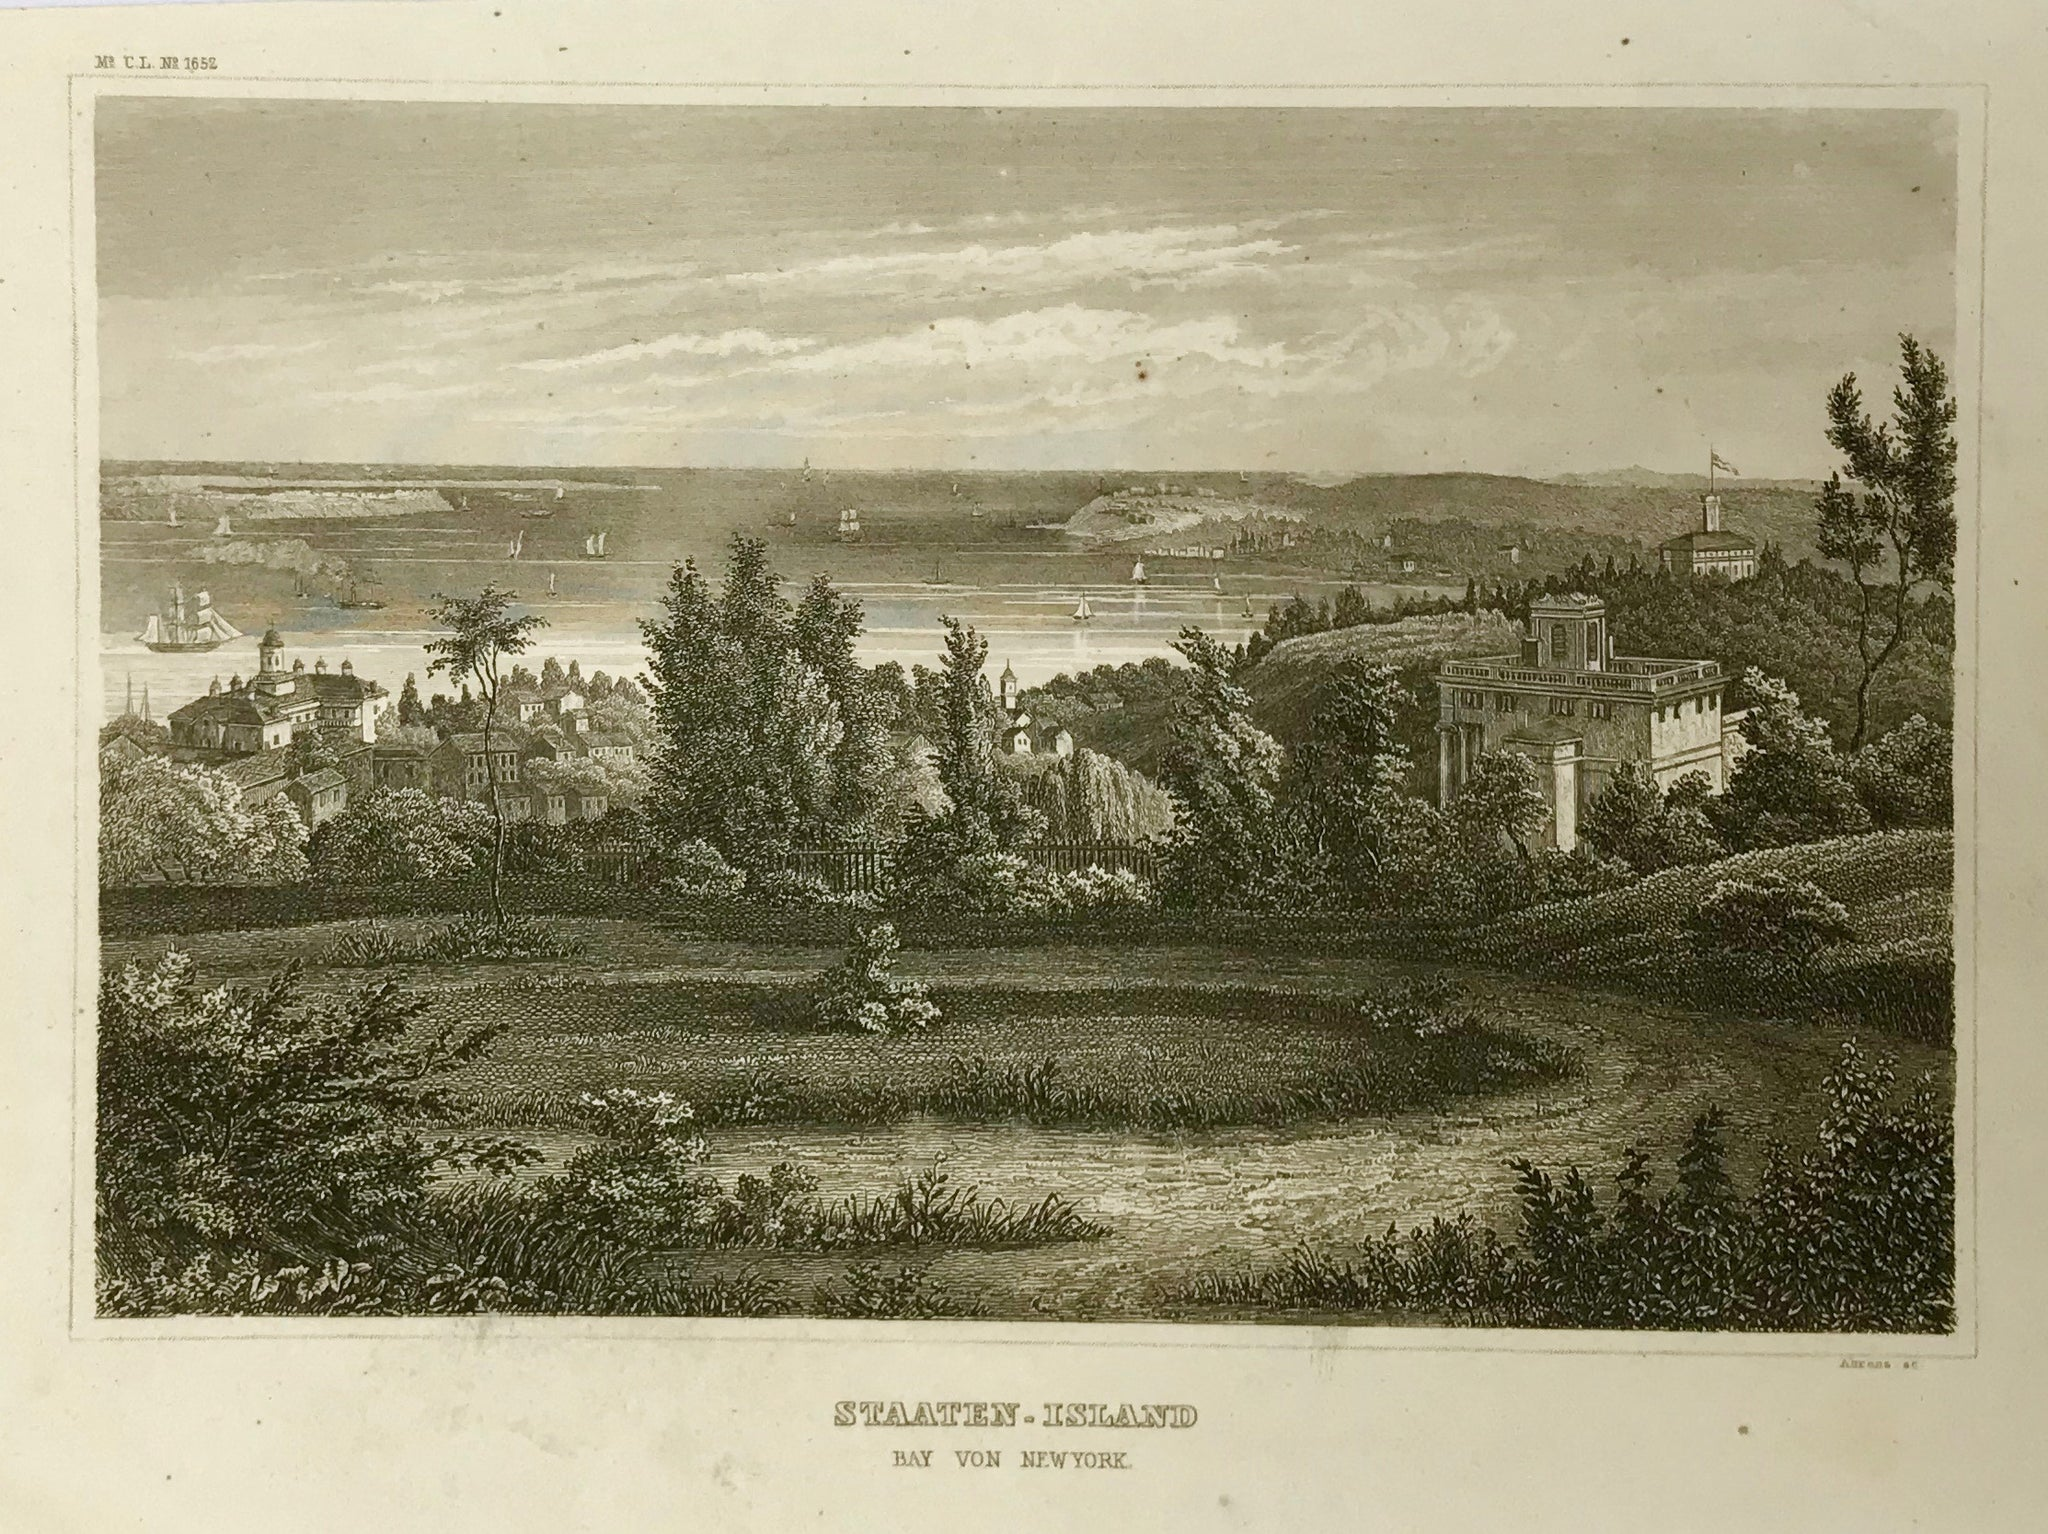 """Staaten Island"" ""Bay von New York""  Steel engraving by Ahrens ca 1860."